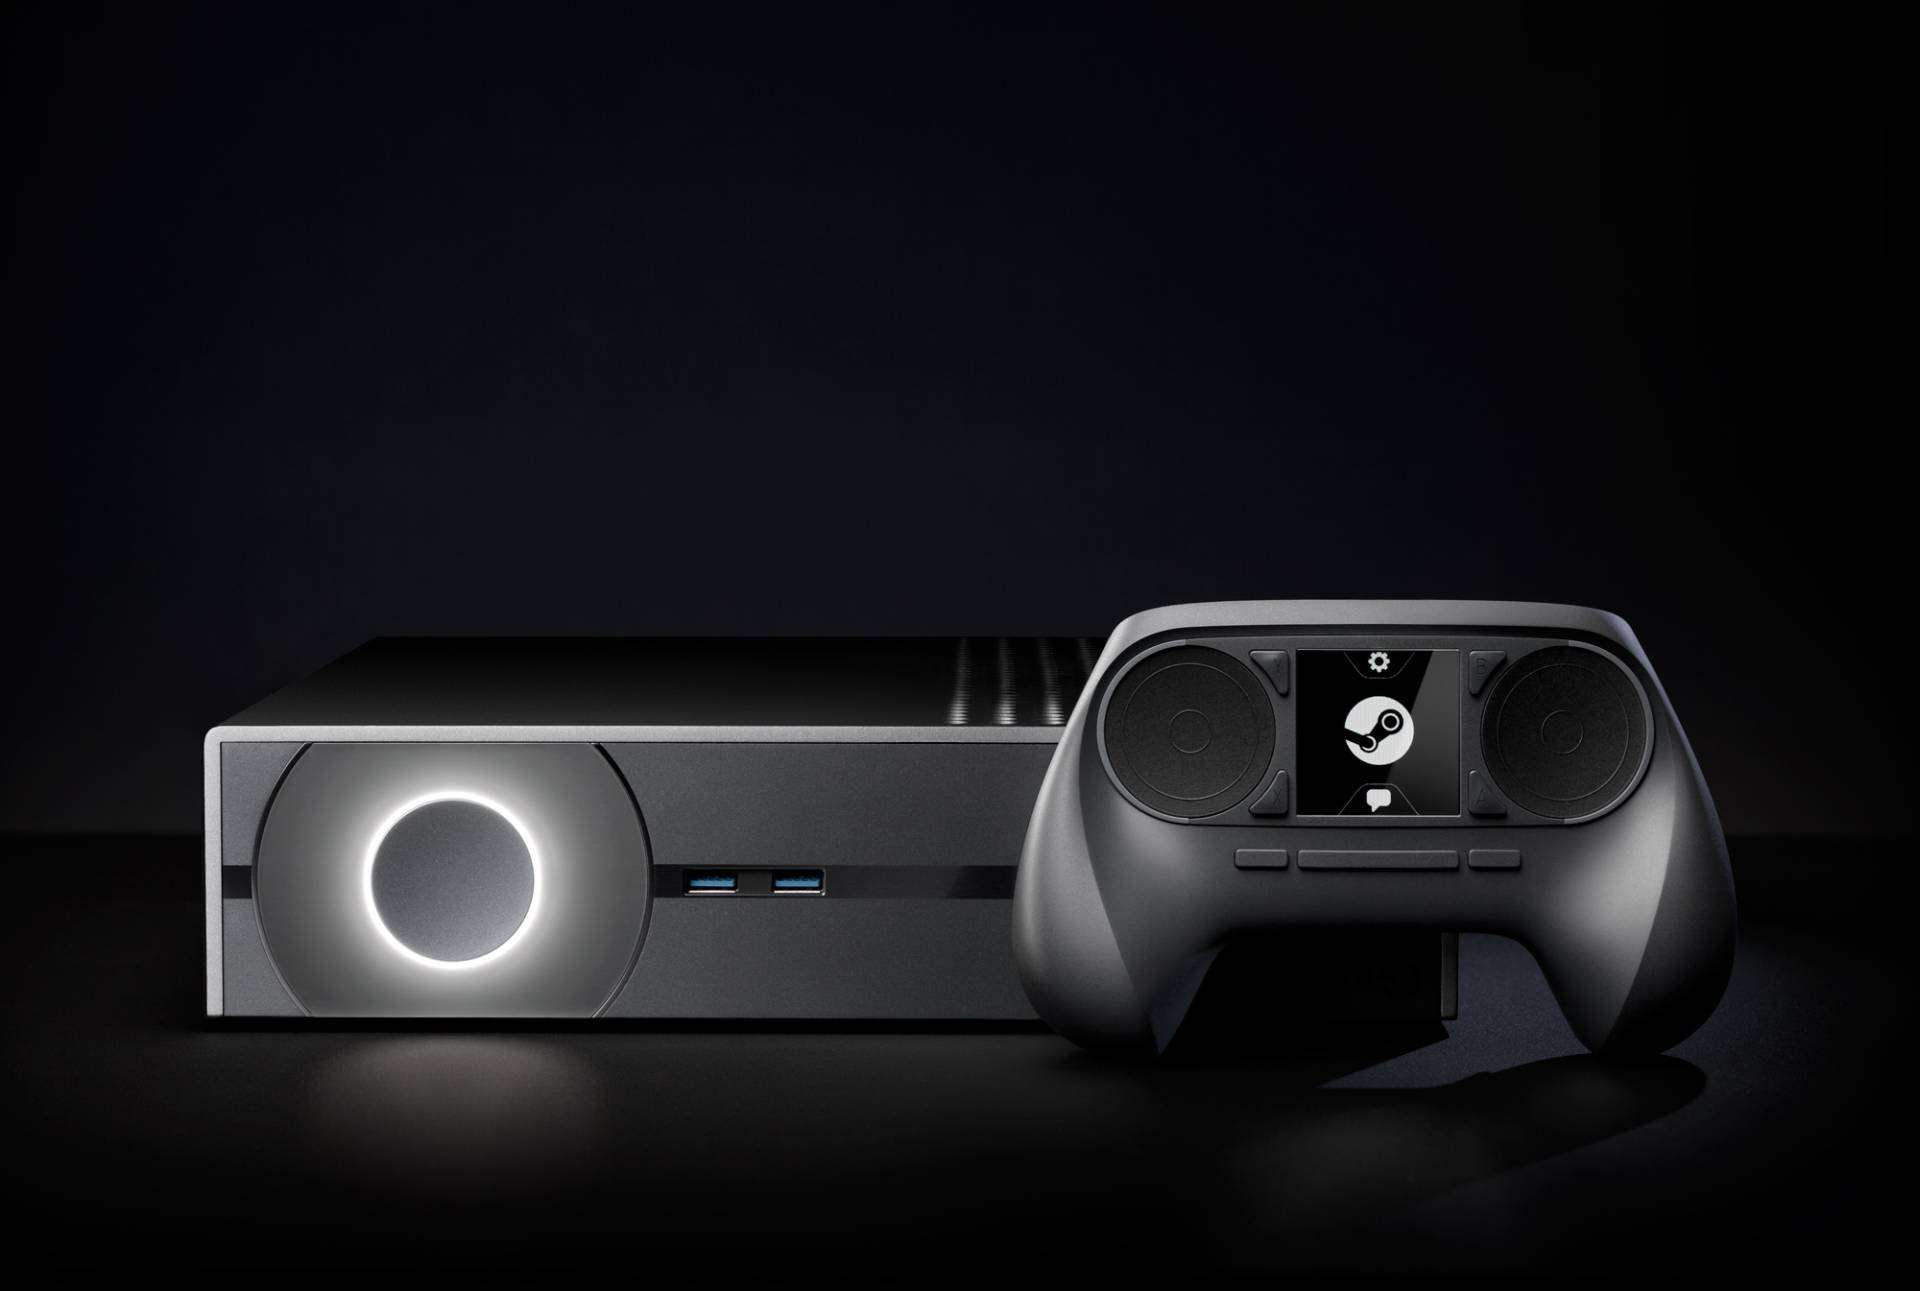 Steam-Machine-and-Steam-Controller-Get-Official-Photos-397241-2.jpg